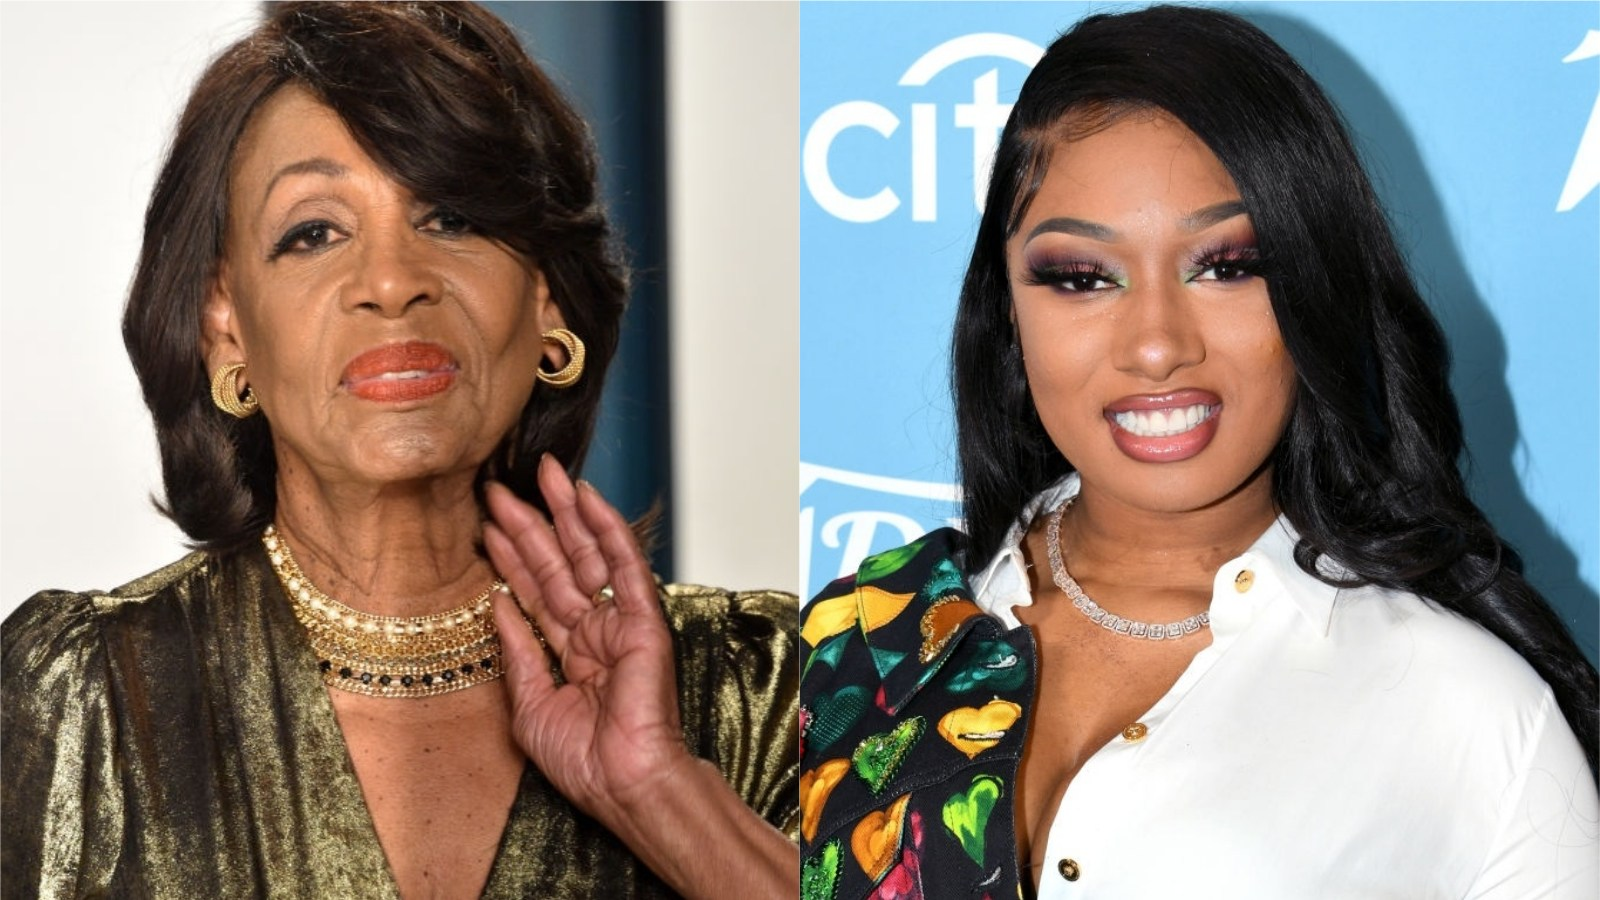 Maxine Waters Gave Megan Thee Stallion A Rave Review Of Her And Cardi B's 'WAP': 'That Is Audacity'